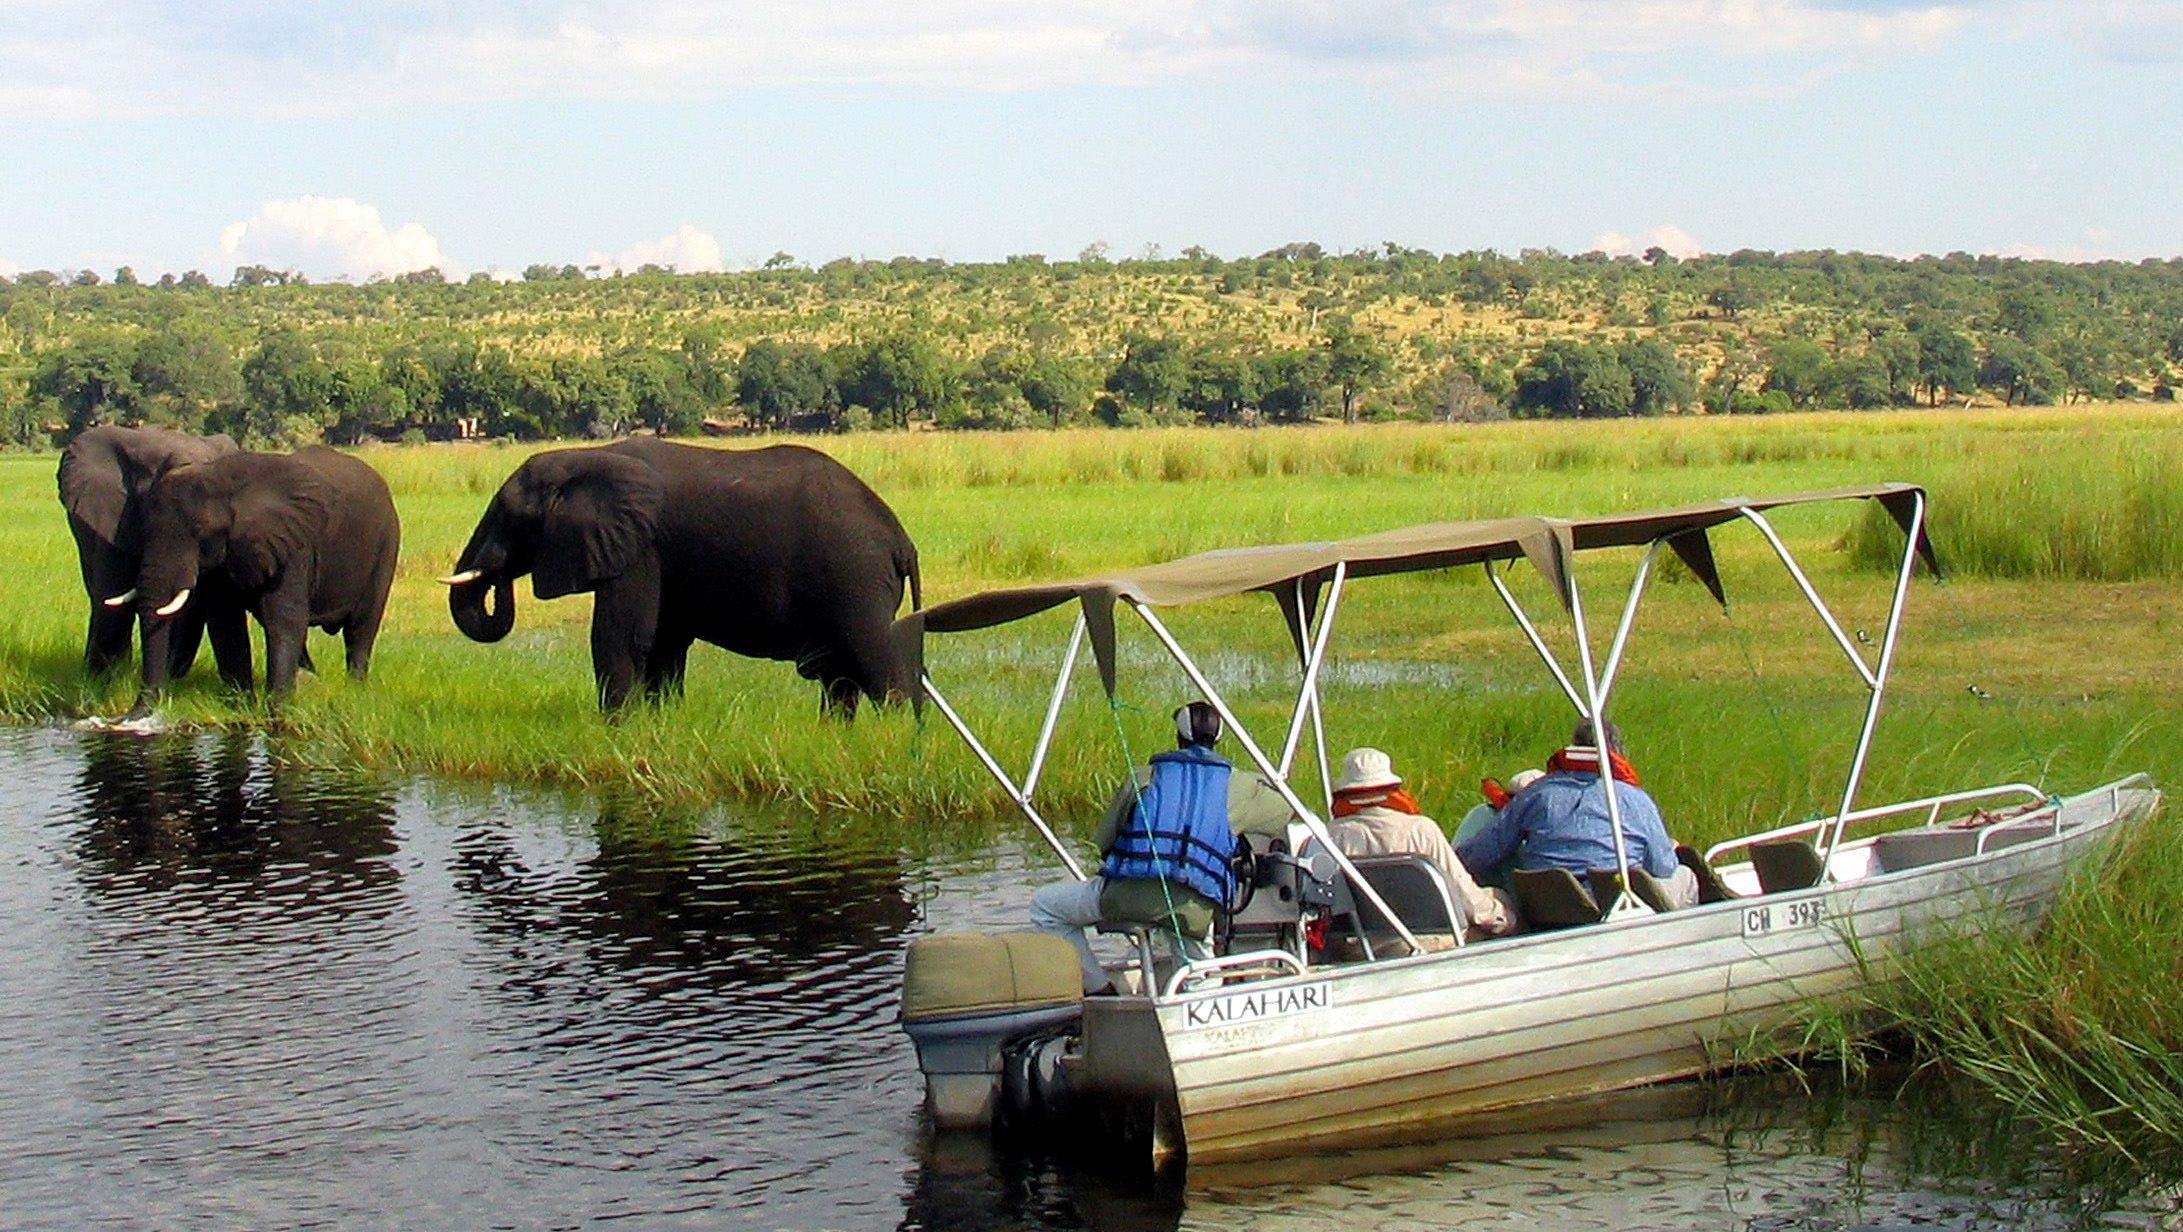 Foreign tourists in safari riverboats observe elephants along the Chobe river bank near Botswana's northern border where Zimbabwe, Zambia and Namibia meet, March 4, 2005.